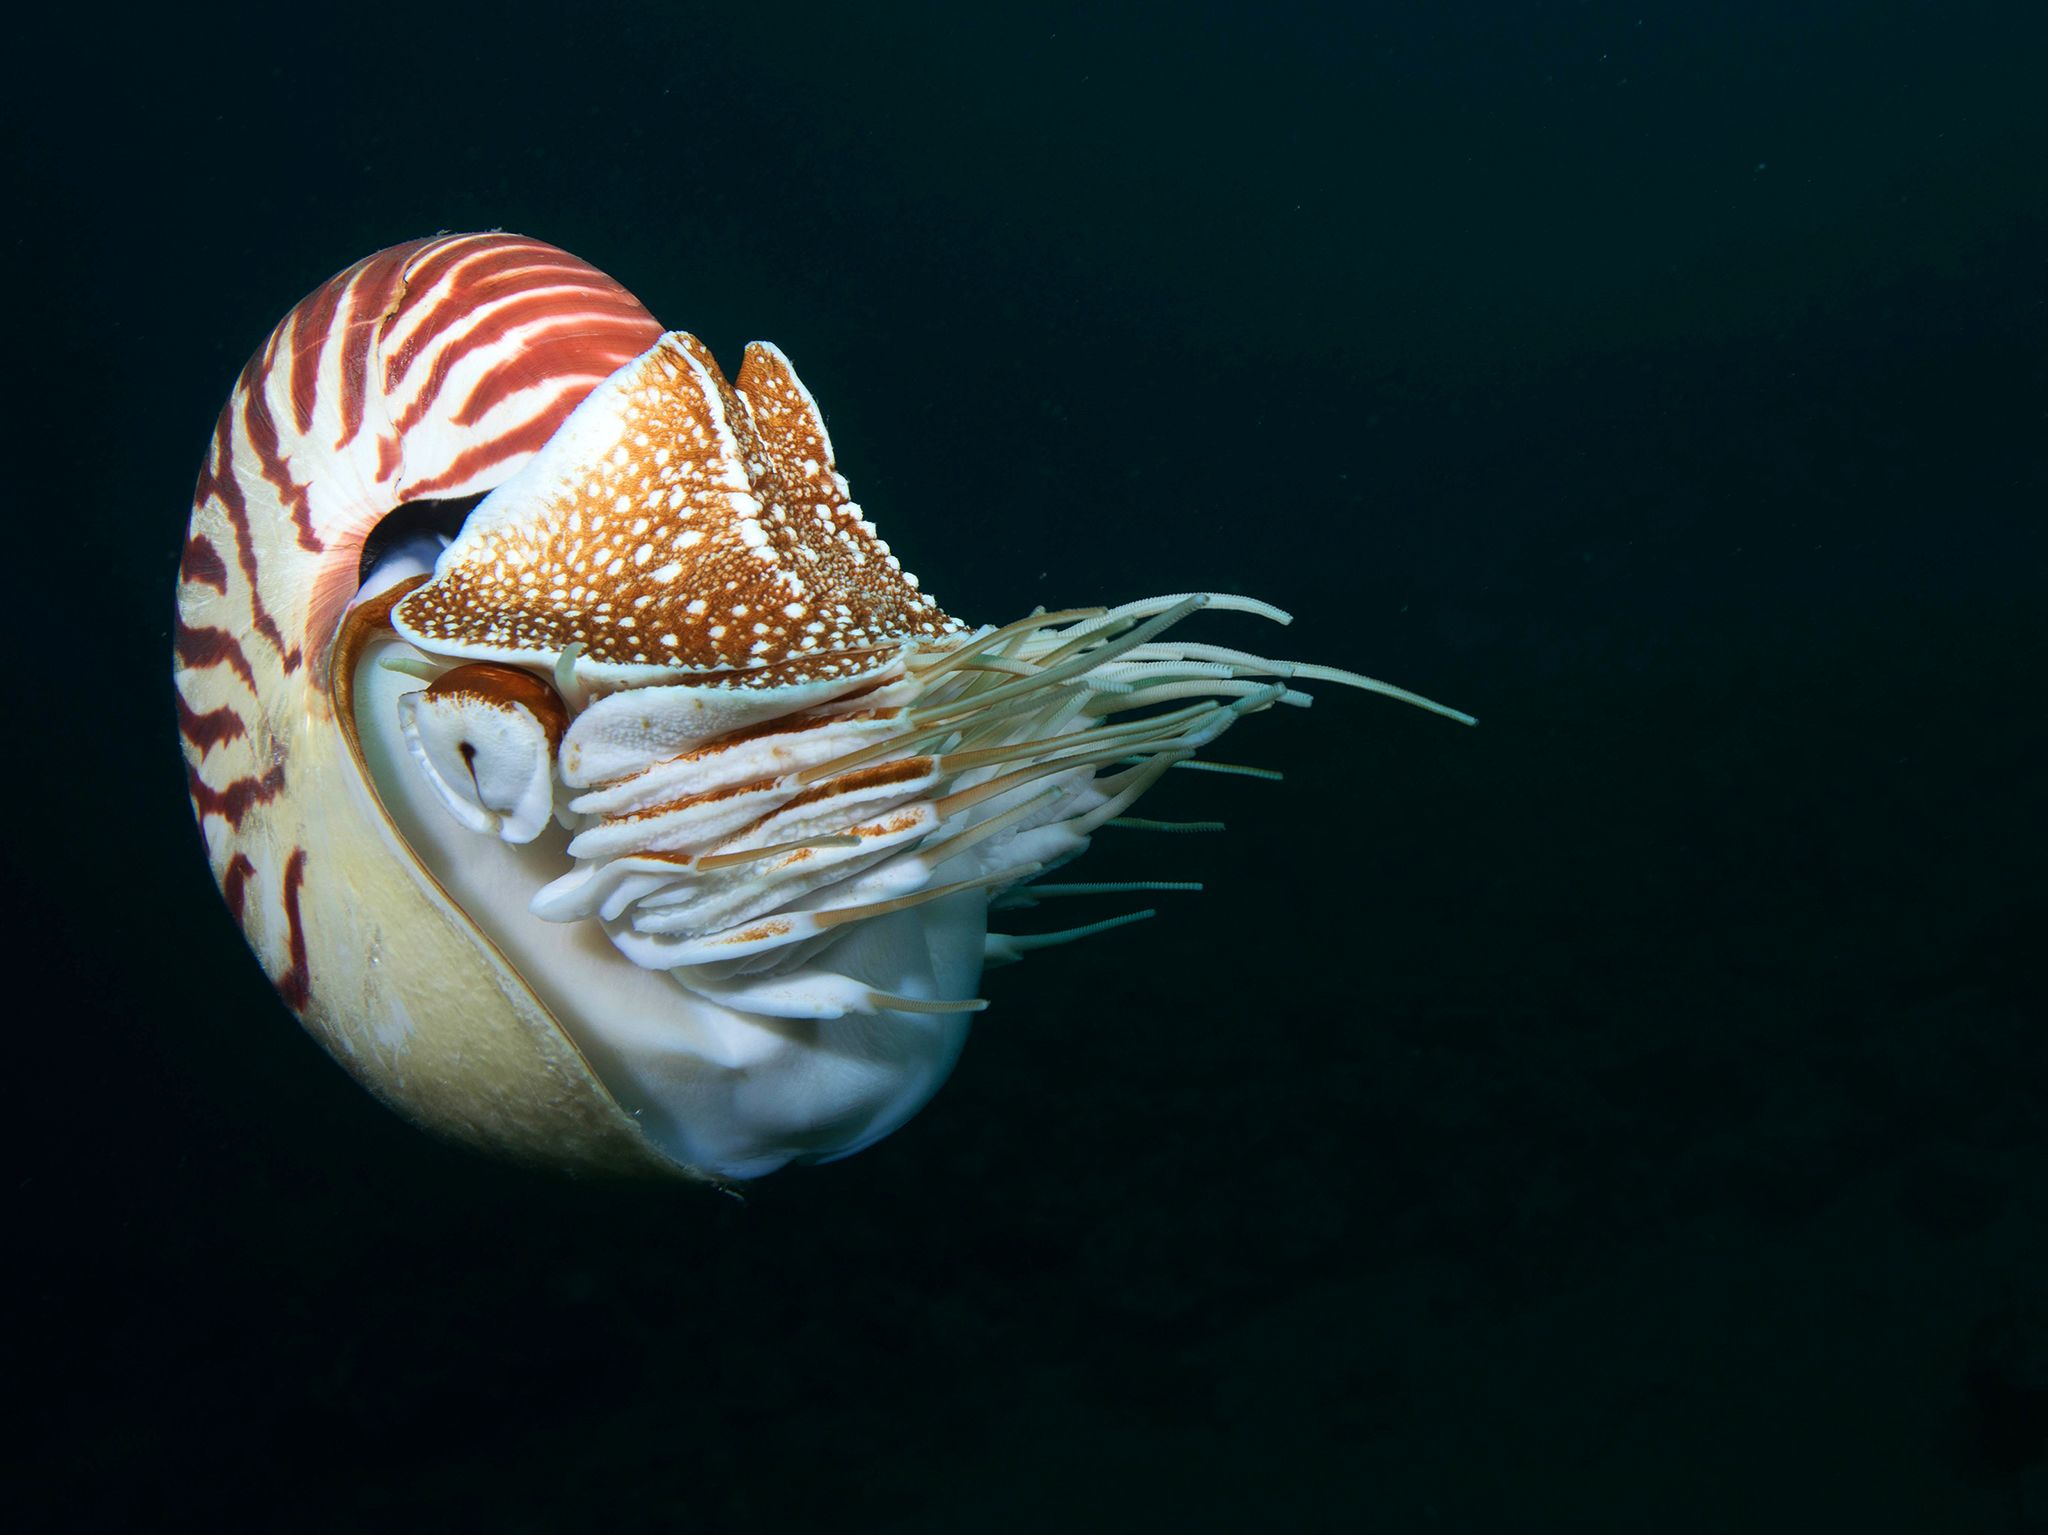 Chambered nautilus.  This image is from Untamed Philippines. [Photo of the day - June 2020]